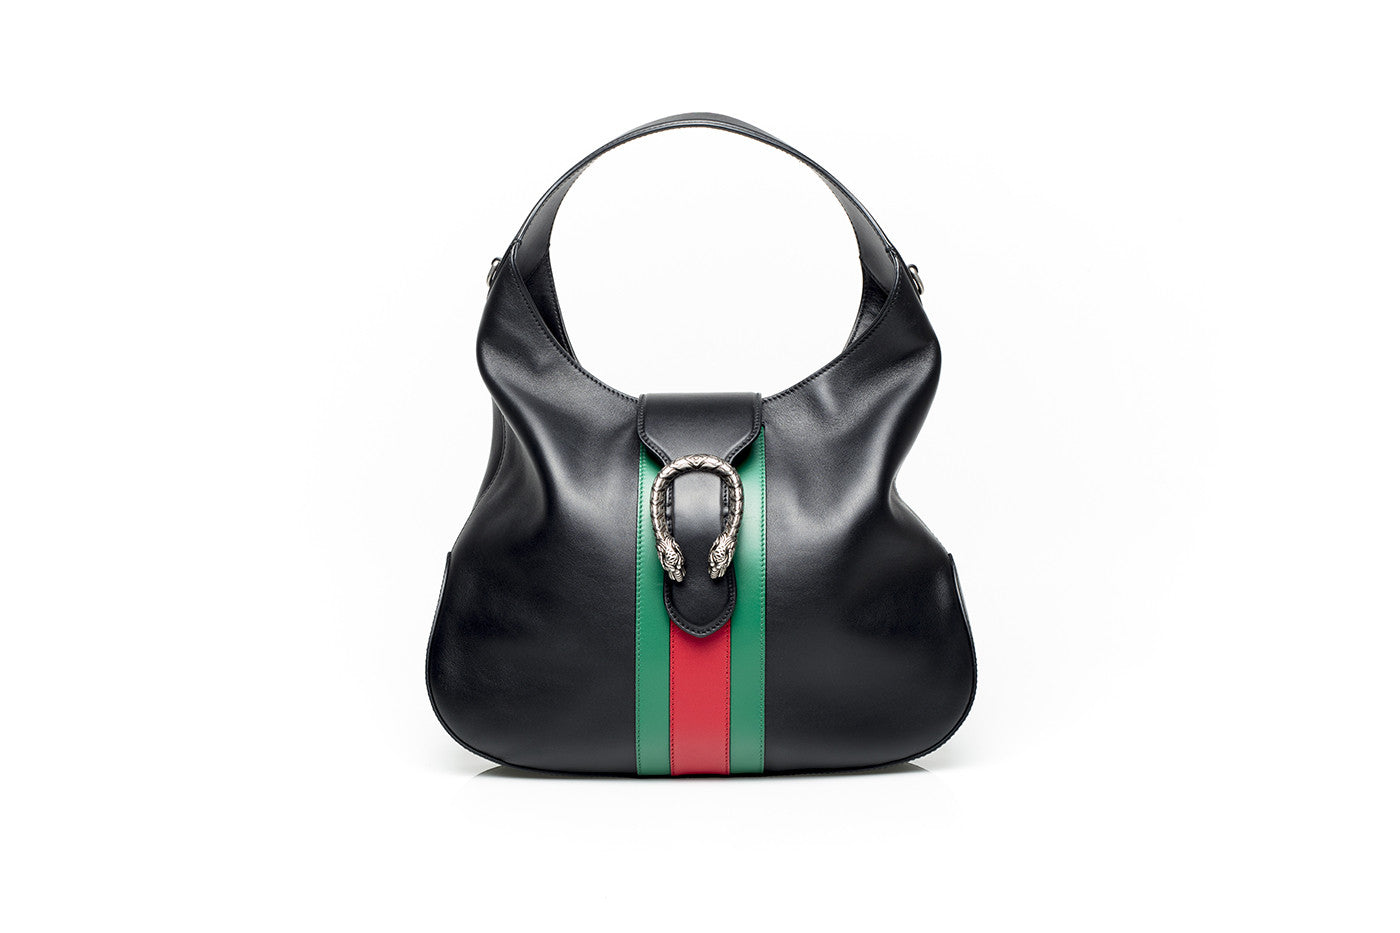 775870a8cf3b Gucci Womens GG Supreme Black Leather Hobo